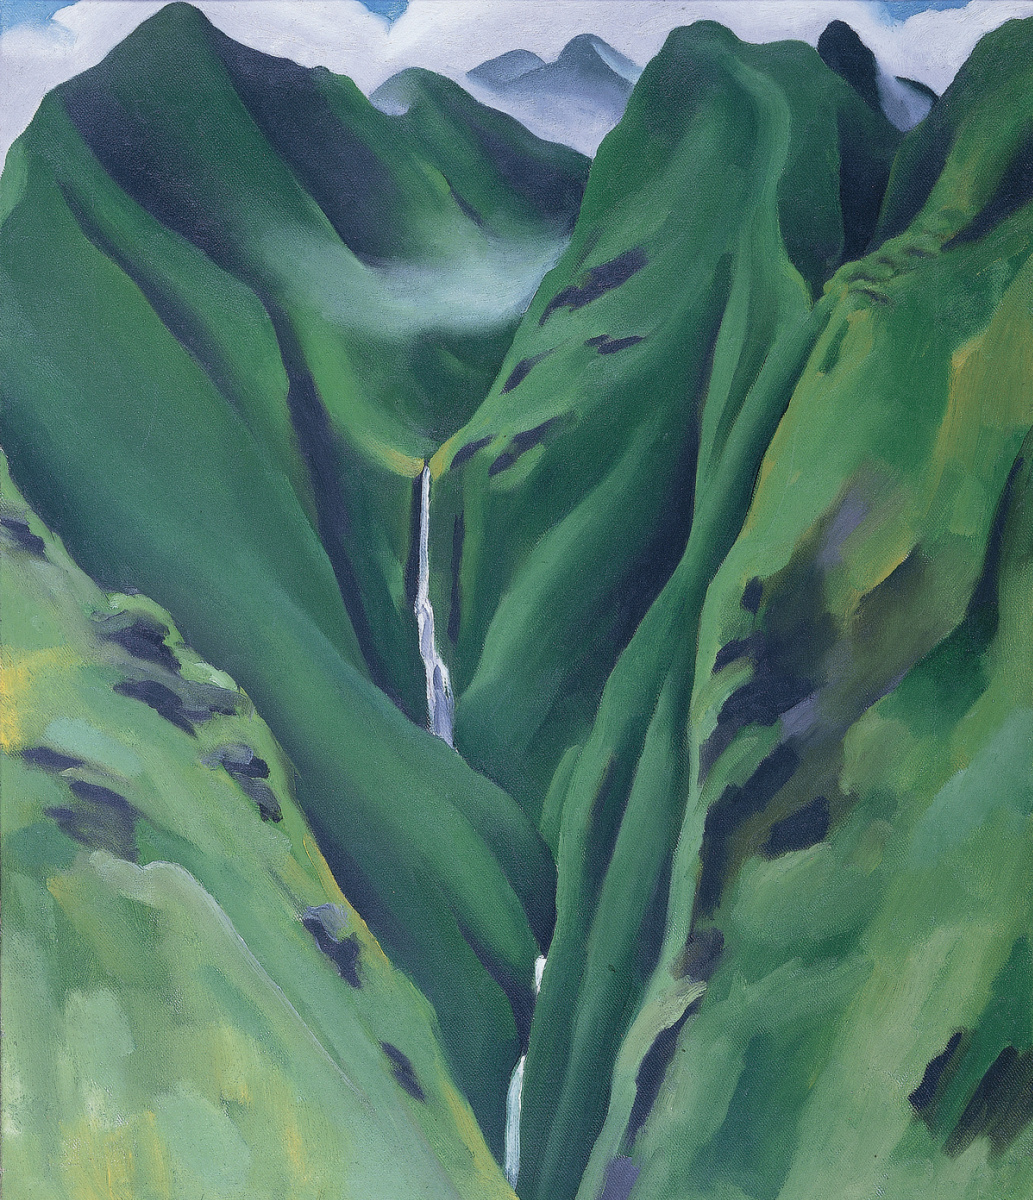 Georgia O'Keeffe. Waterfall No. 1, 'Īao Valley, Maui,